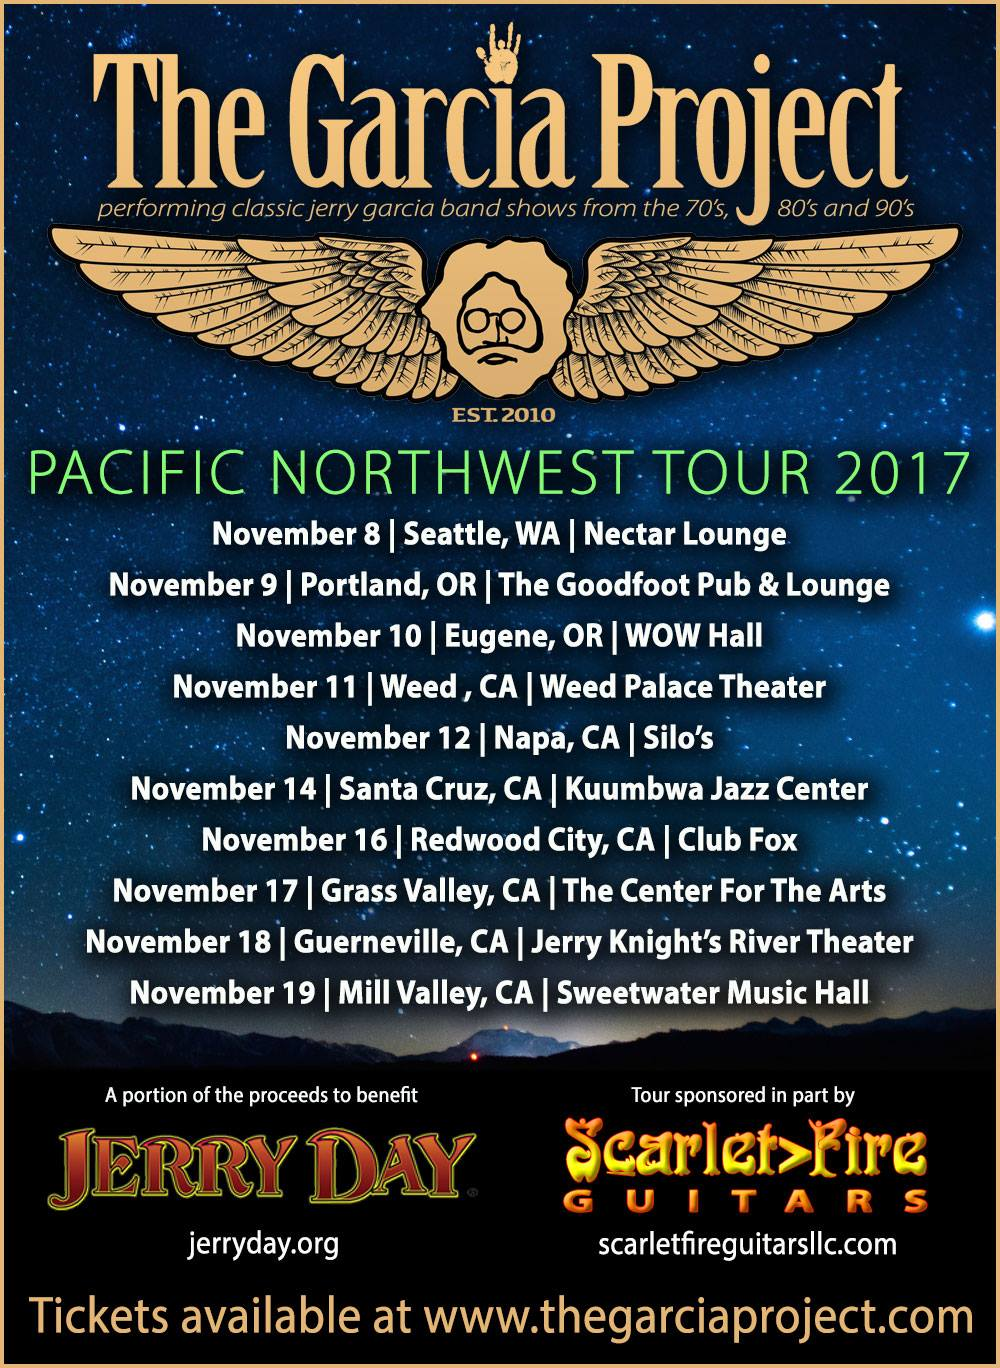 The+Garcia+Project+-+Pacific+Northwest+Tour+2017.jpg